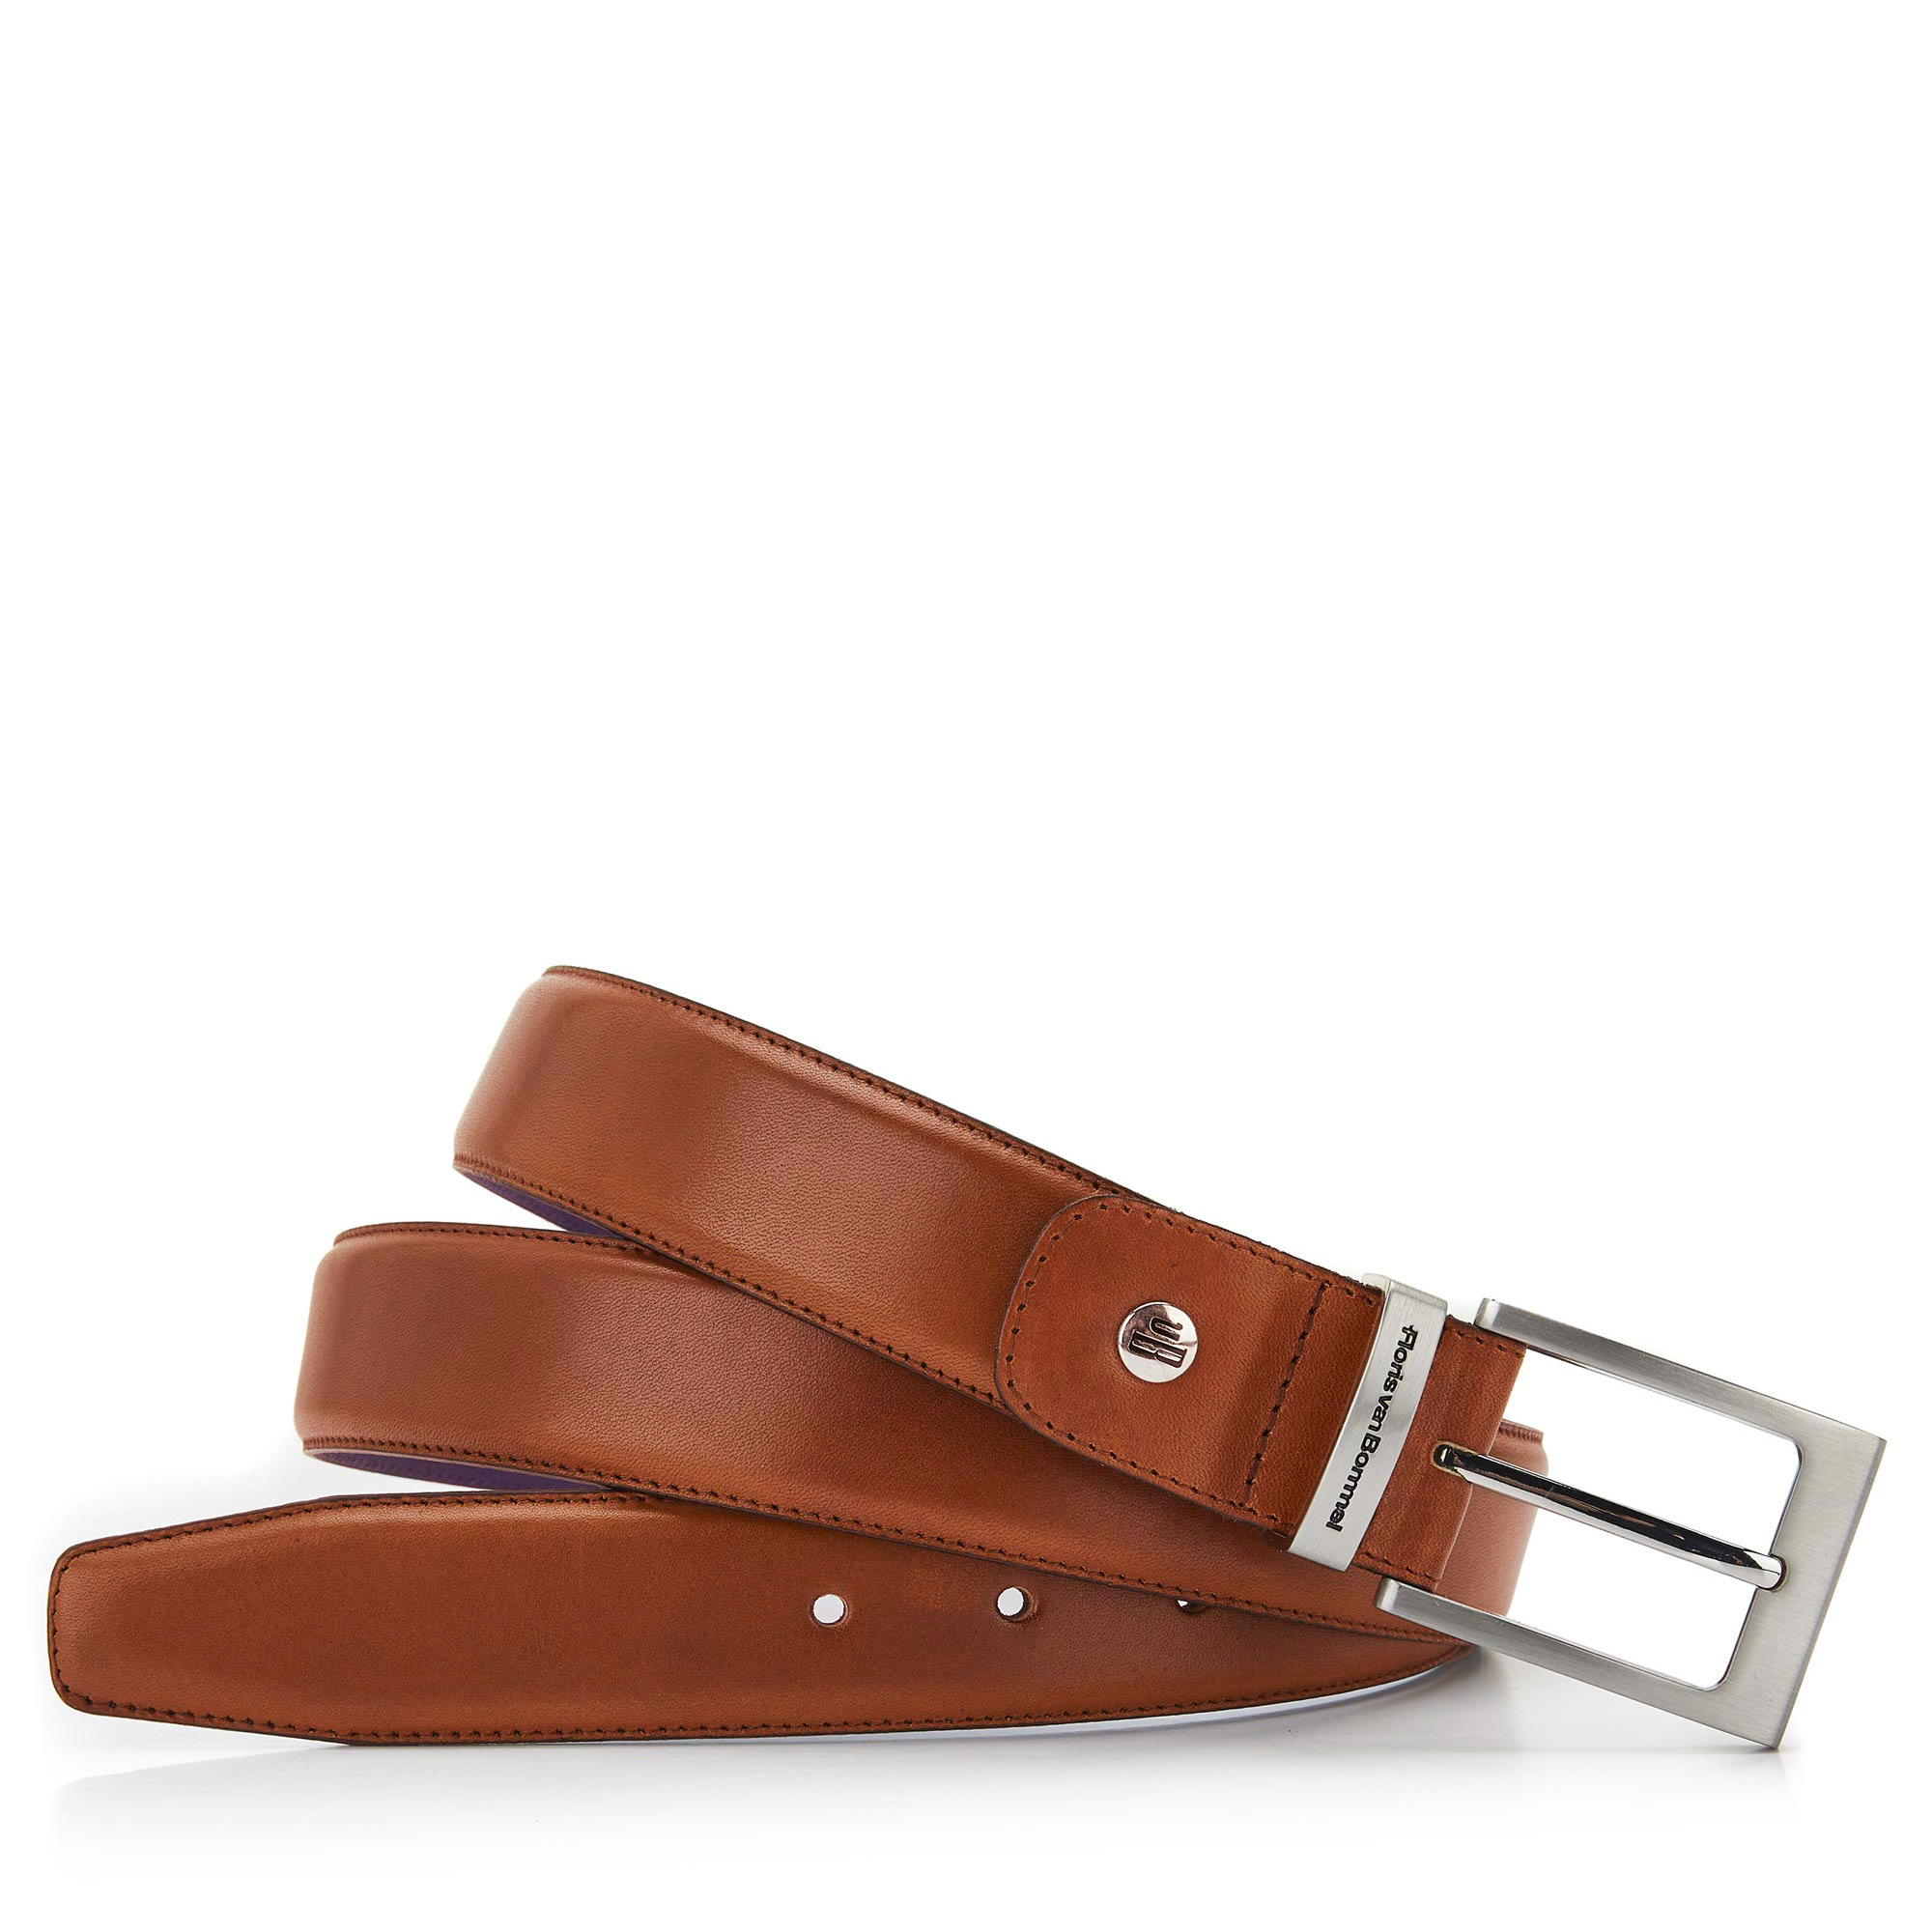 75046/00 - Floris van Bommel dark cognac leather men's belt